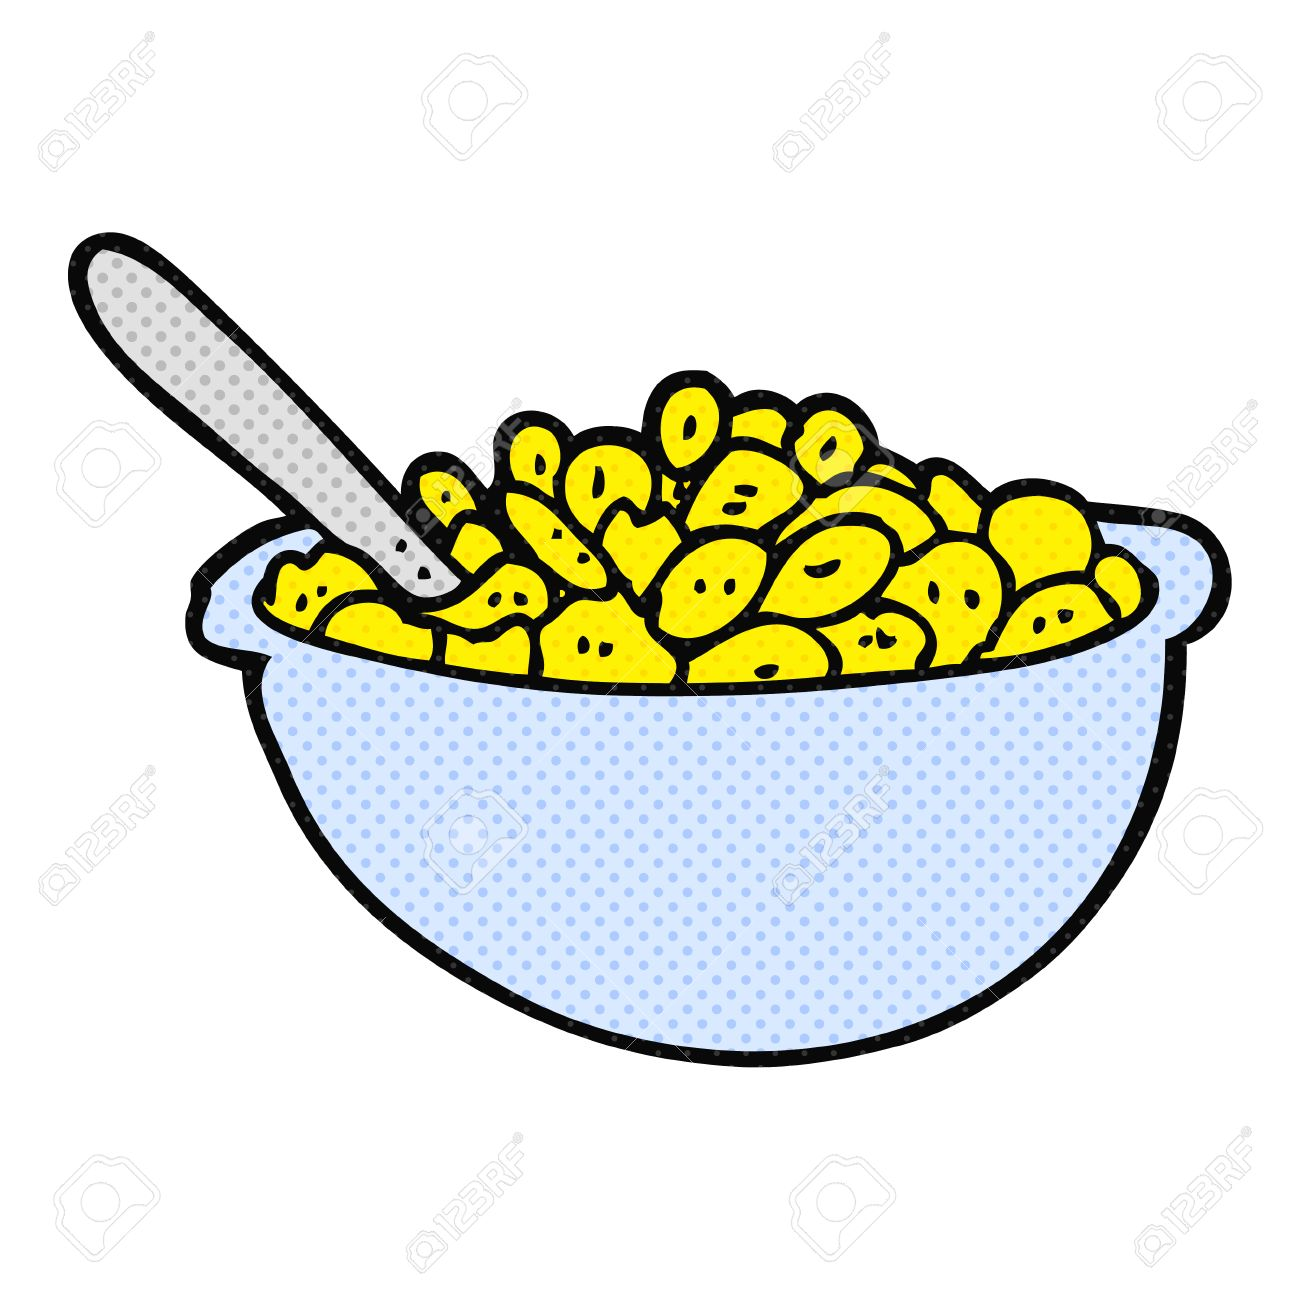 freehand drawn cartoon bowl of cereal royalty free cliparts vectors rh 123rf com Cartoon Cereal Bowl Empty Cereal Bowl